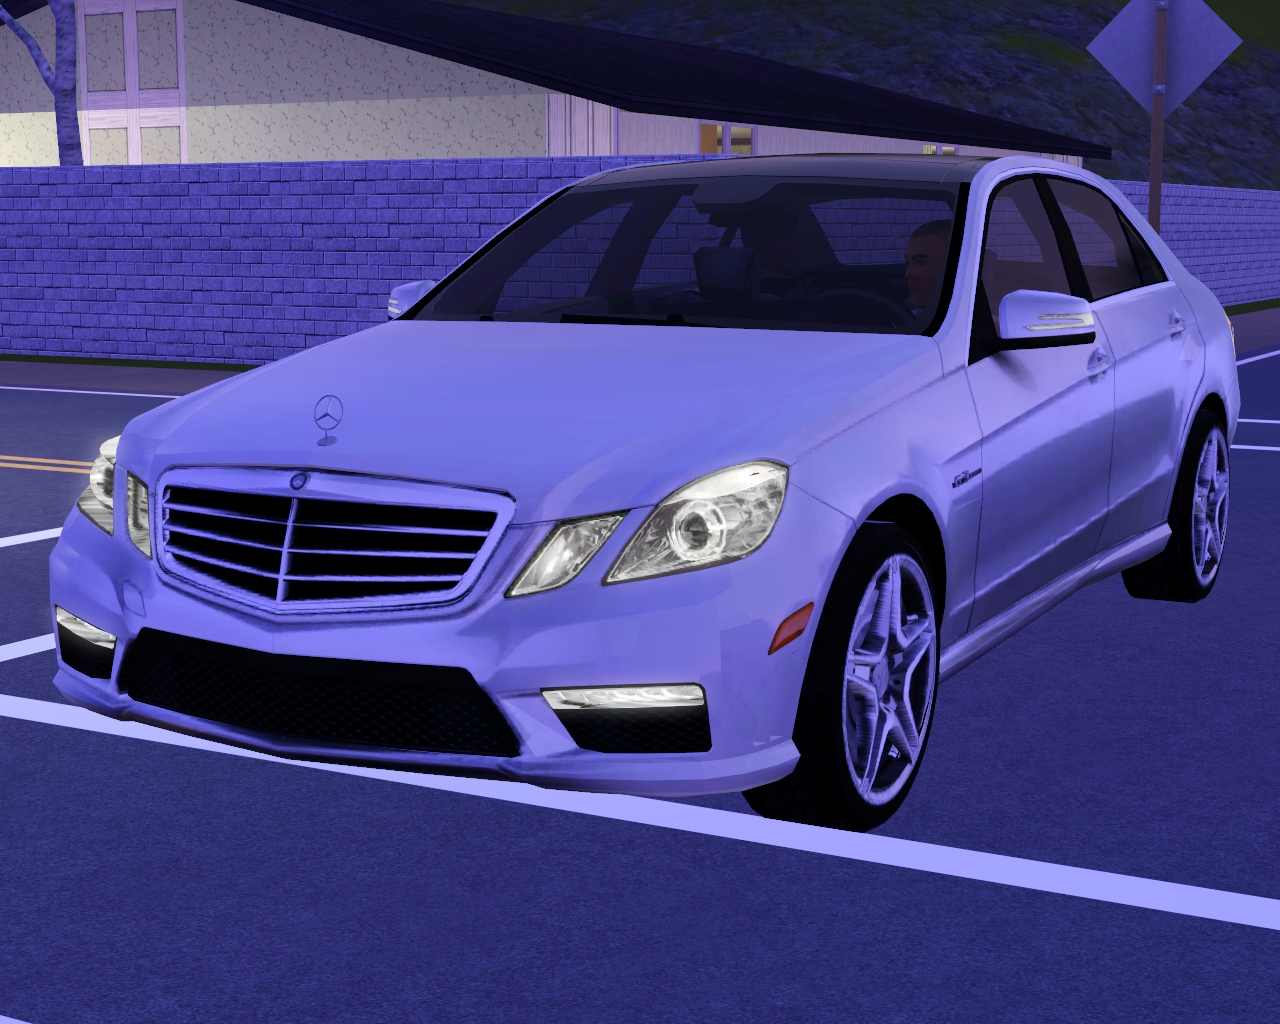 my sims 3 blog 2011 mercedes benz e63 amg by fresh prince. Black Bedroom Furniture Sets. Home Design Ideas